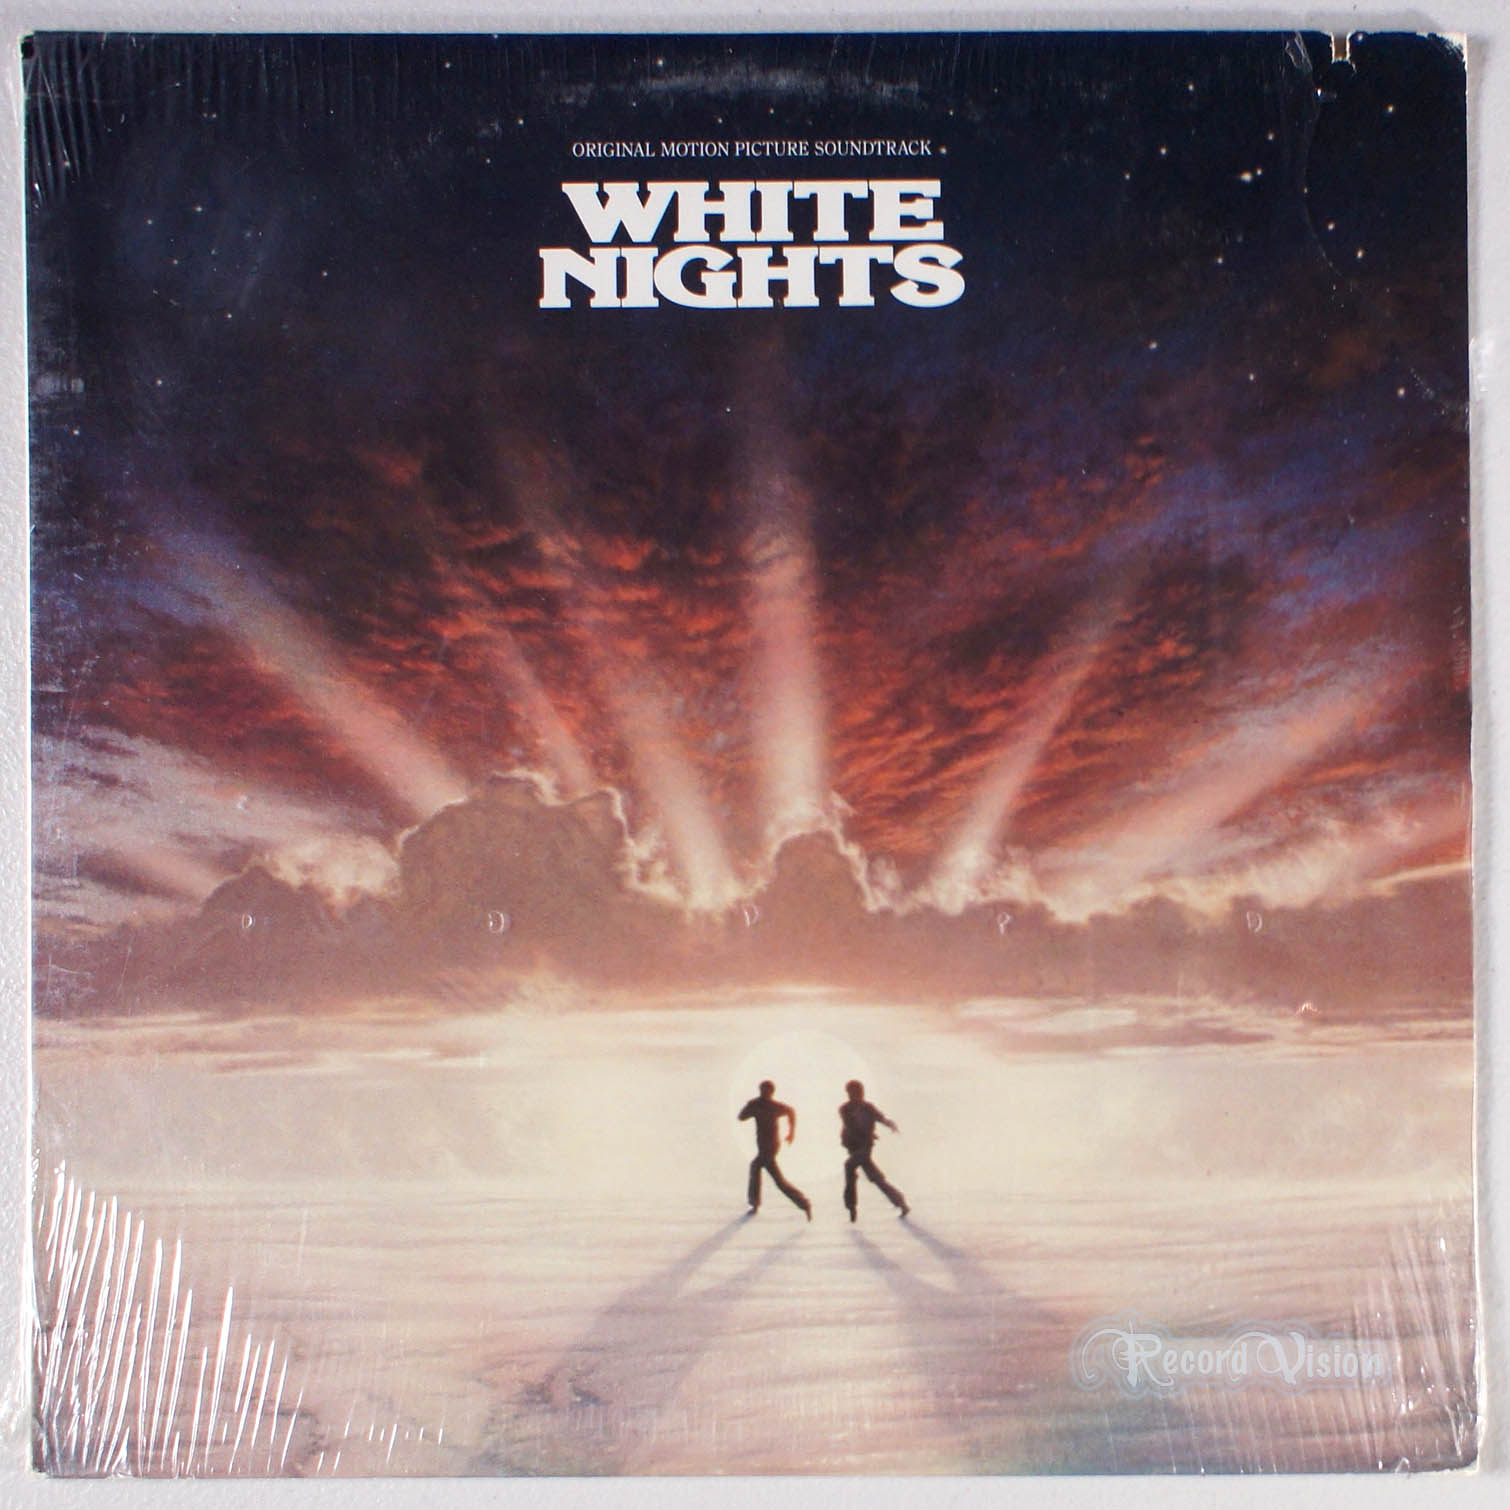 ASSORTED (SOUNDTRACK) - White Nights - LP